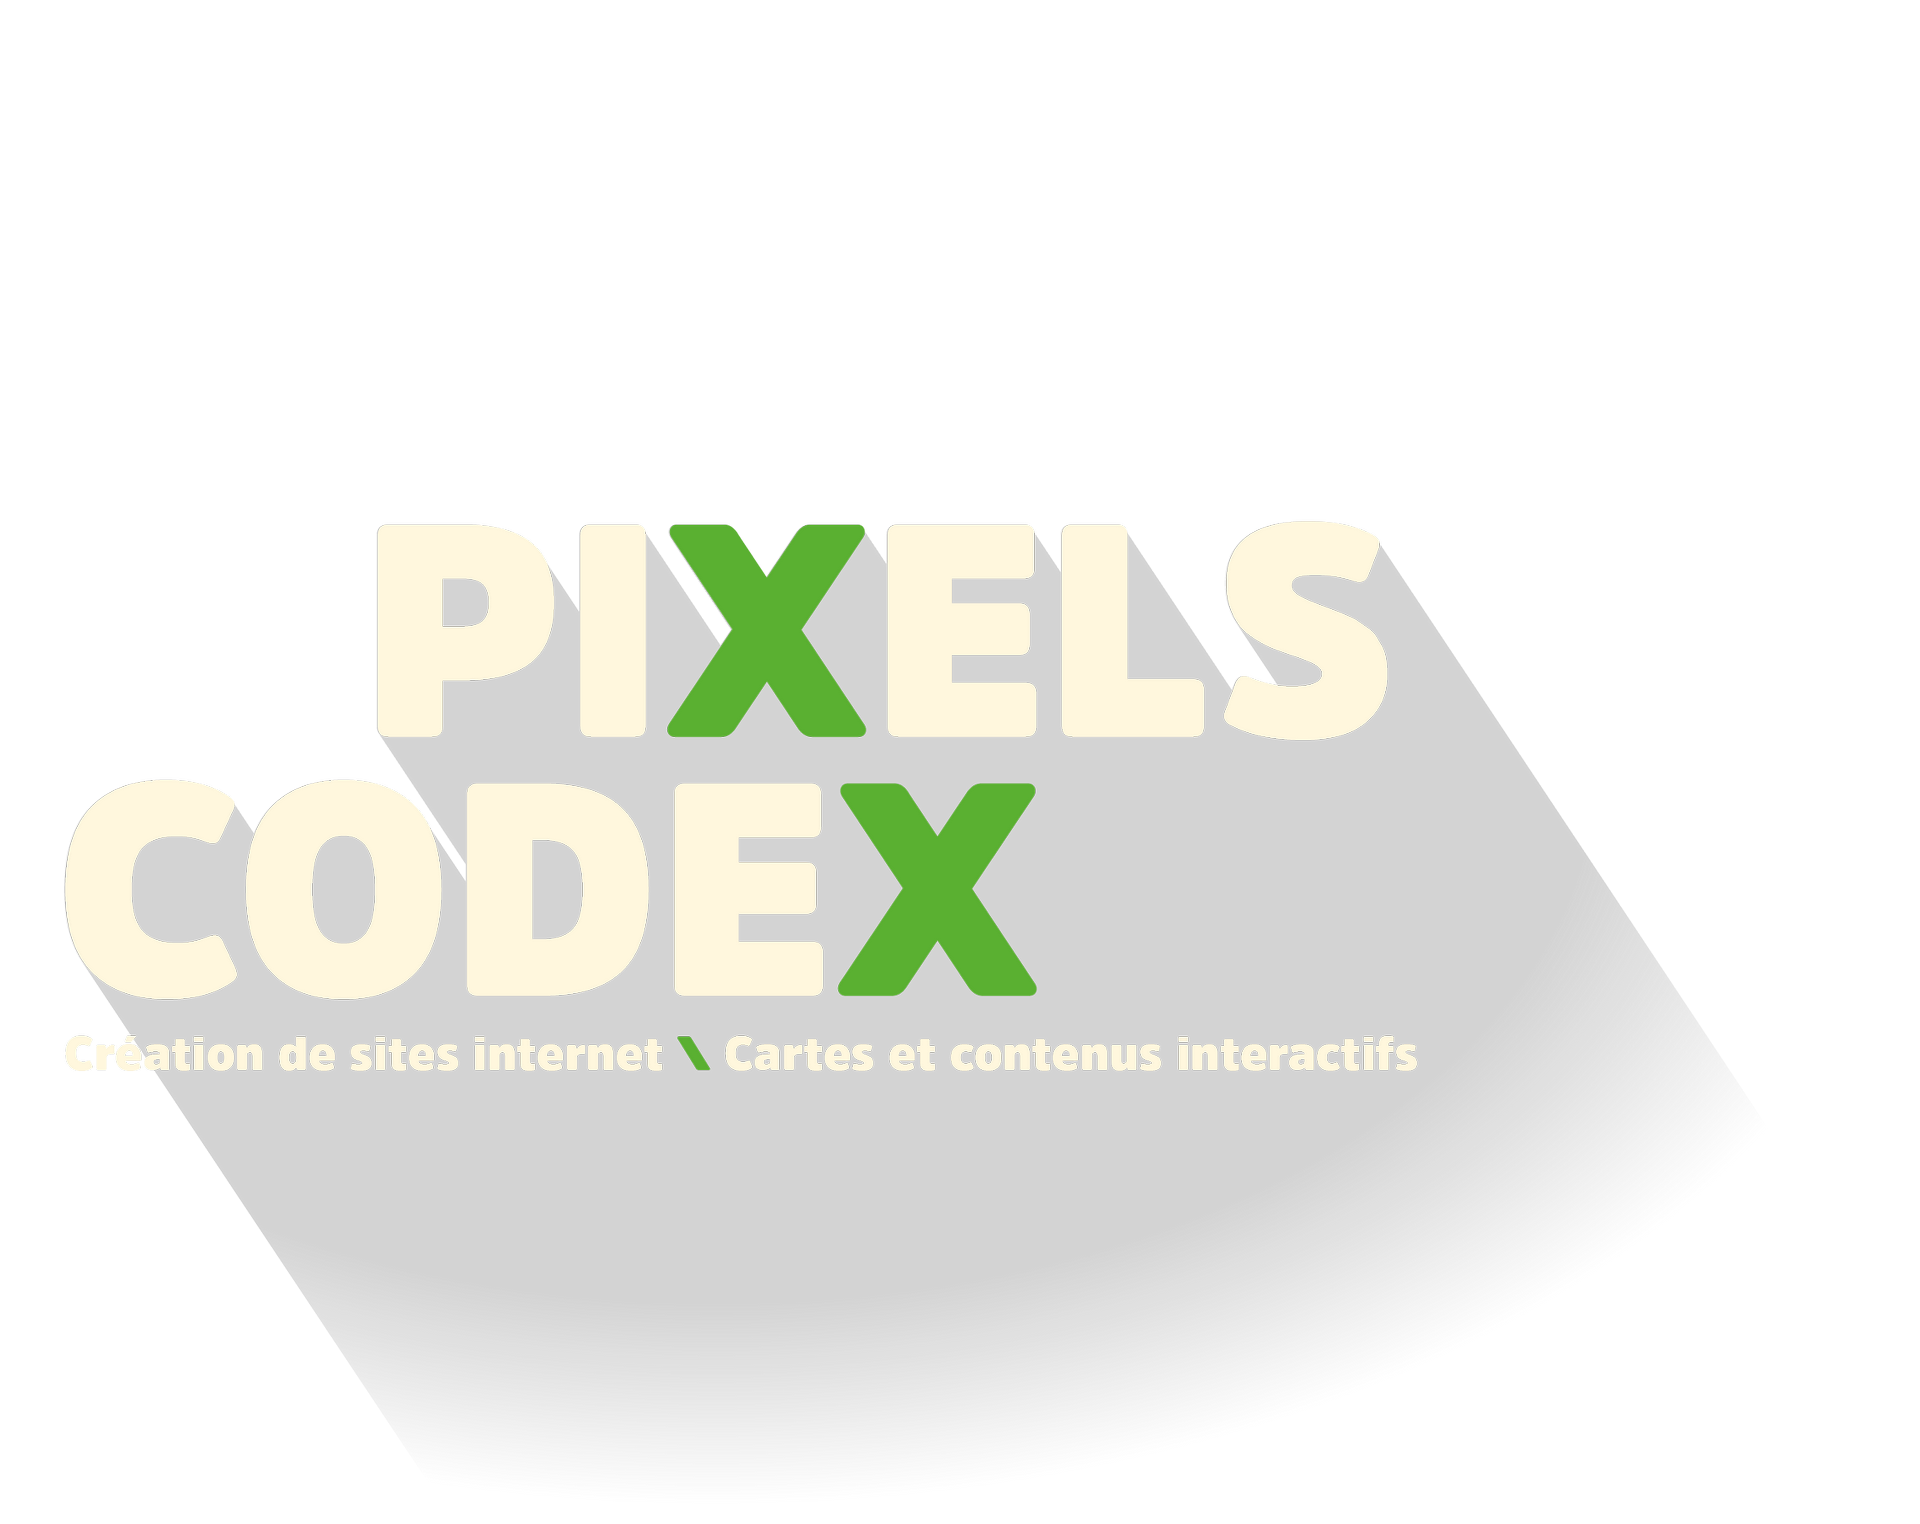 Pixels Codex création sites internet